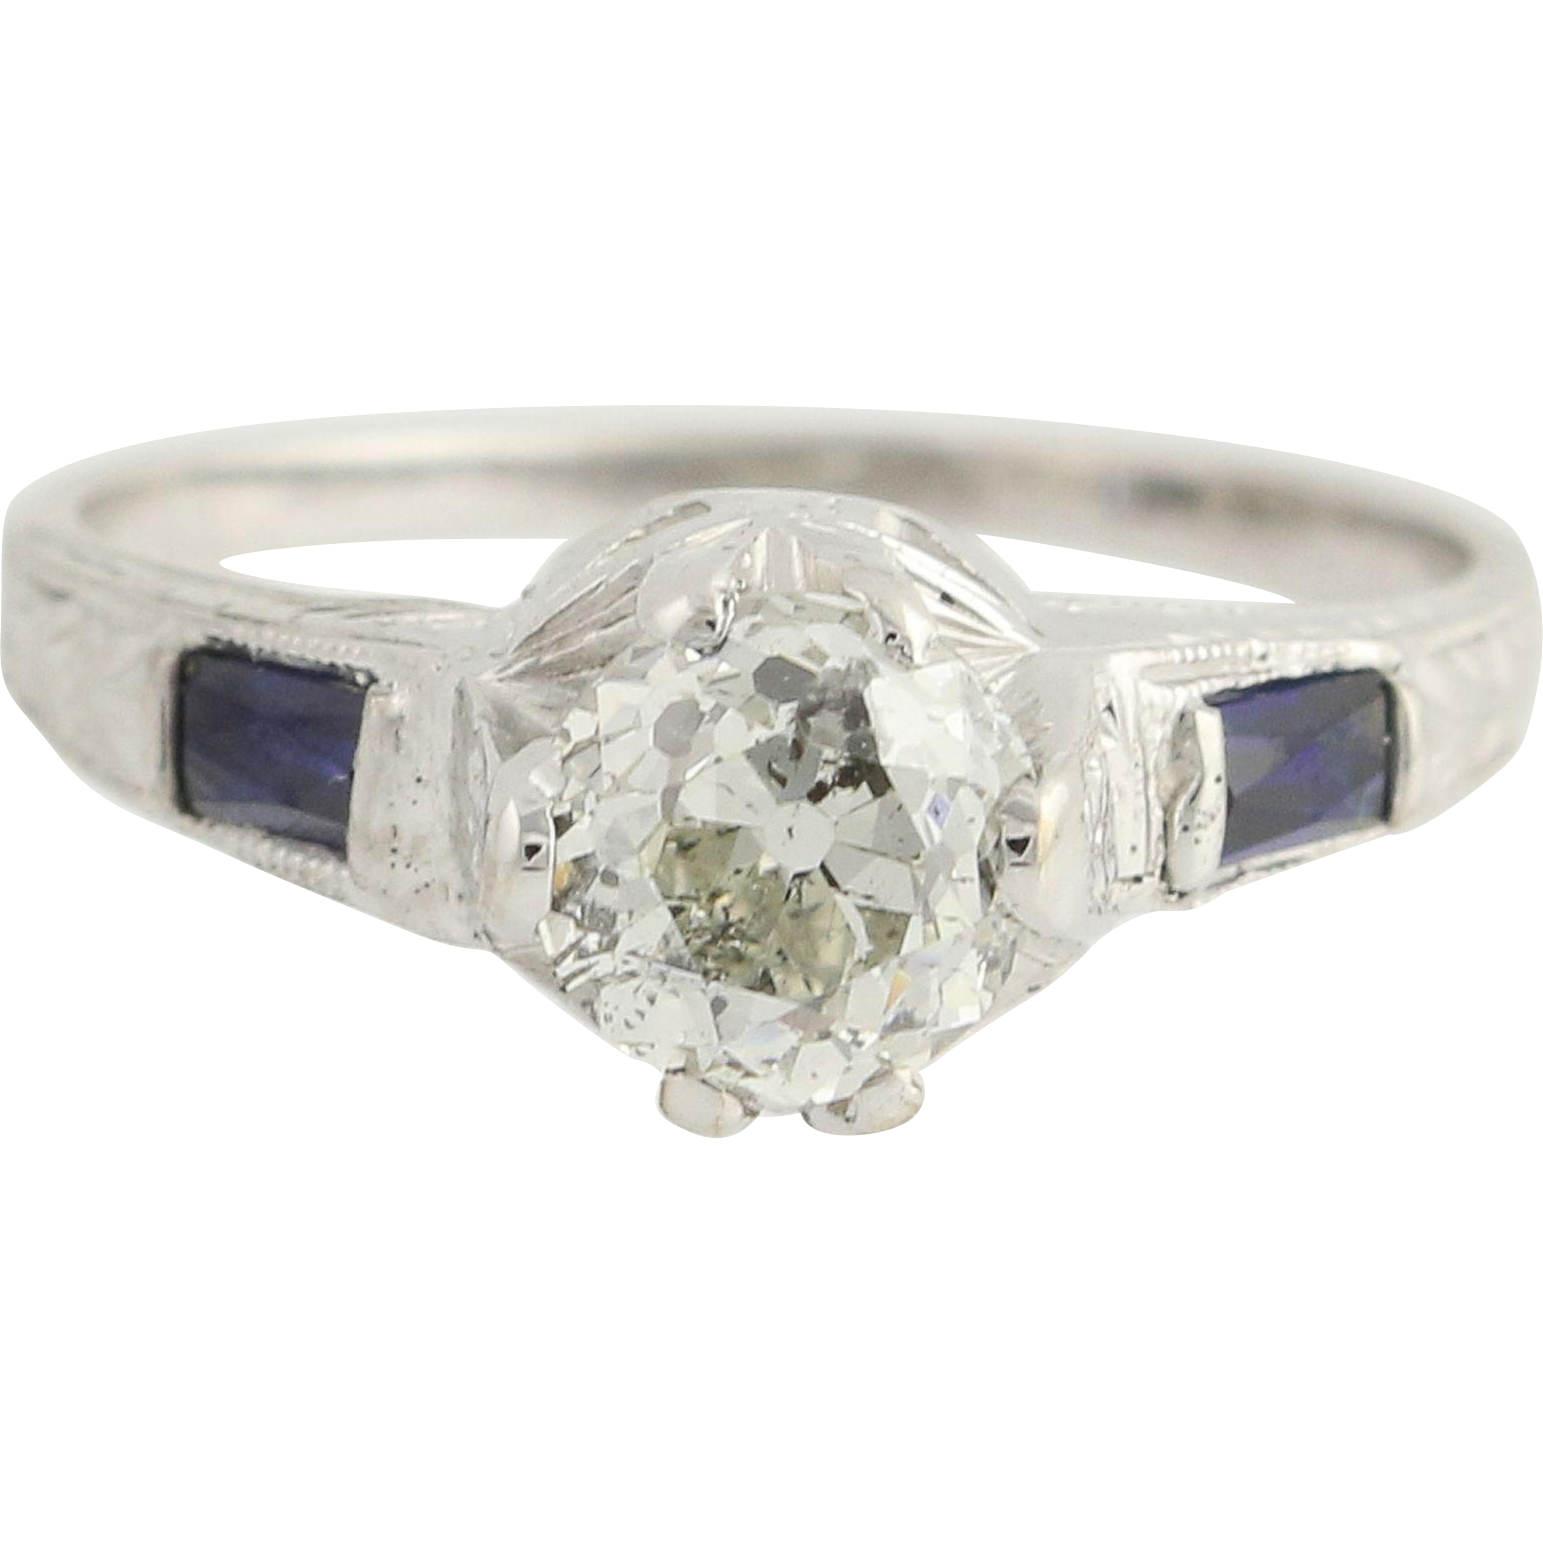 Art Deco Diamond & Syn. Sapphire Engagement Ring - 18k White Gold 1.01ct